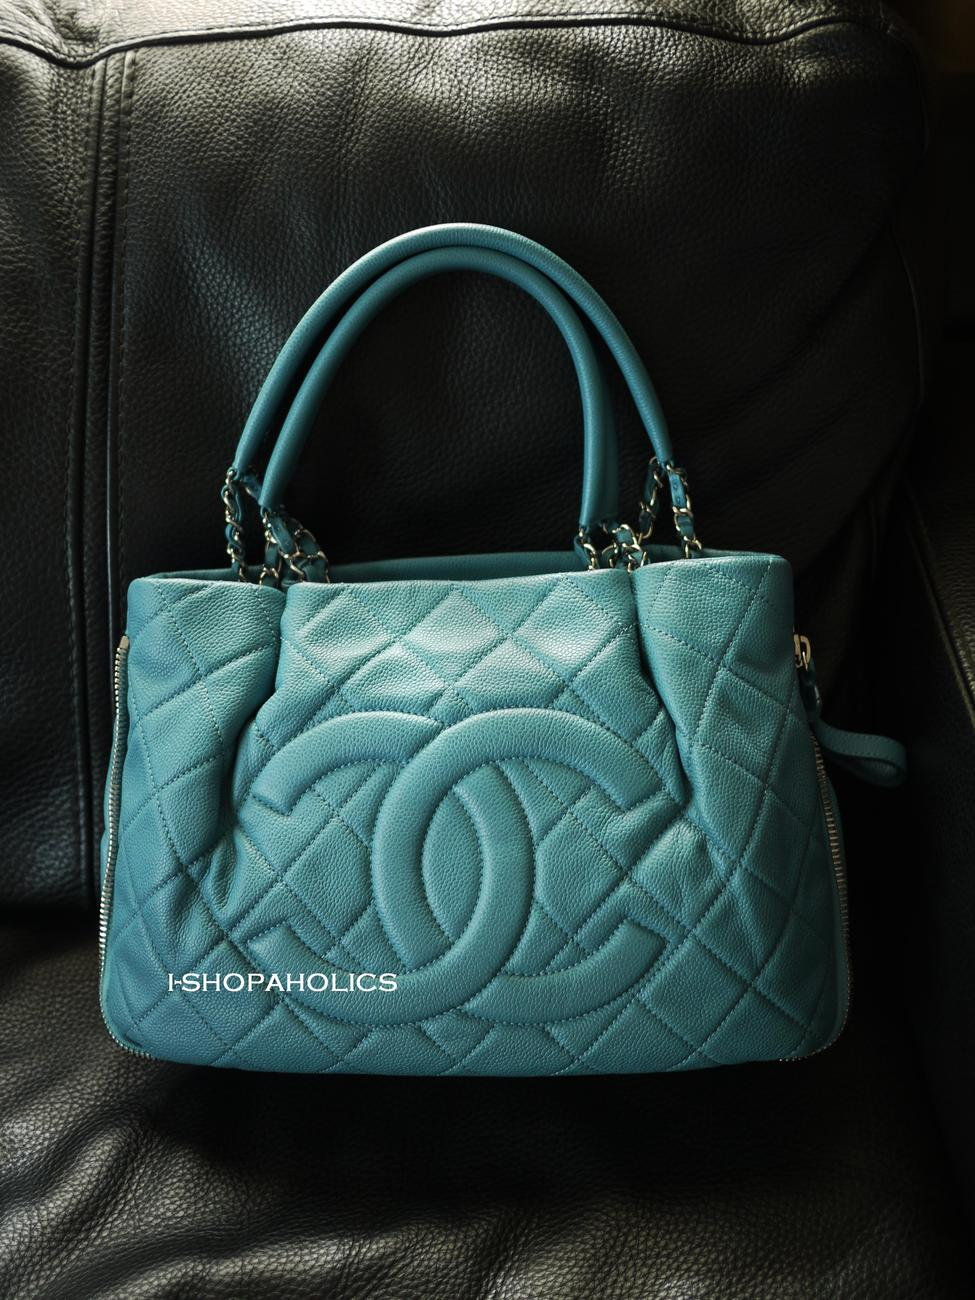 LIKE NEW CHANEL BLUE EXPANDABLE TOTE BABY BLUE JEAN 11P SHOULDER BAG